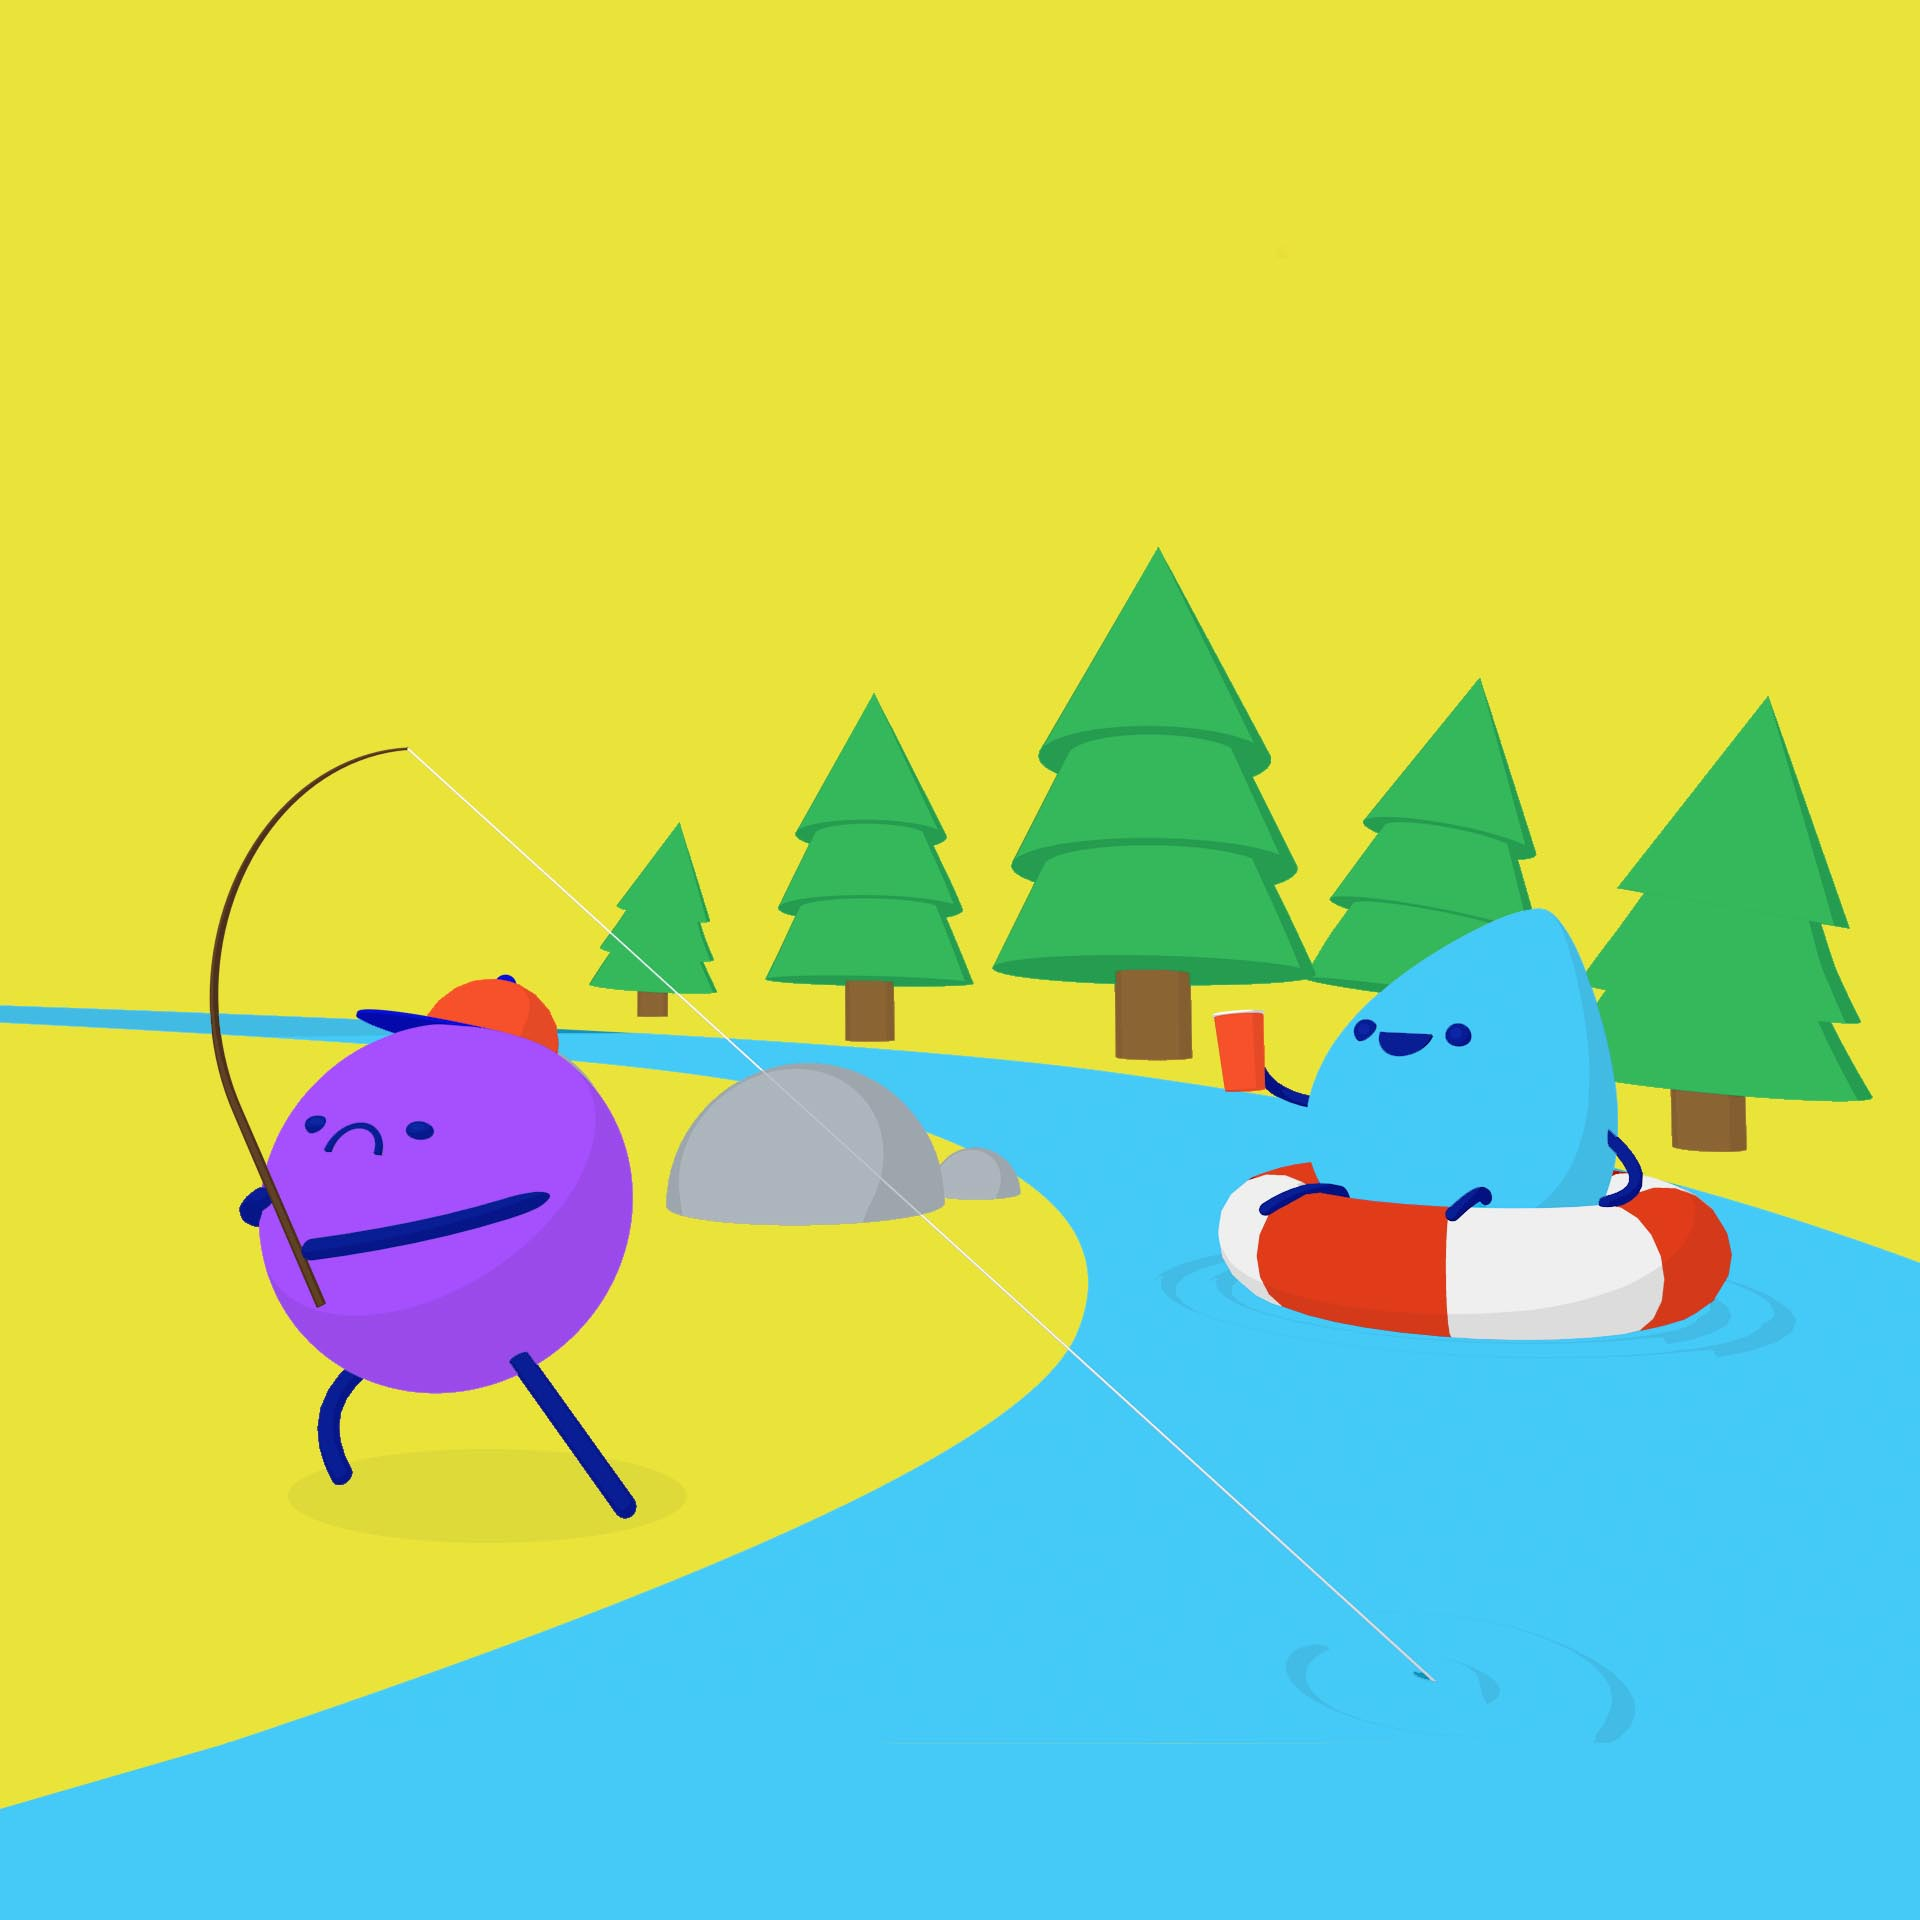 Illustration of round character fishing in a river with water droplet character tubing in the river